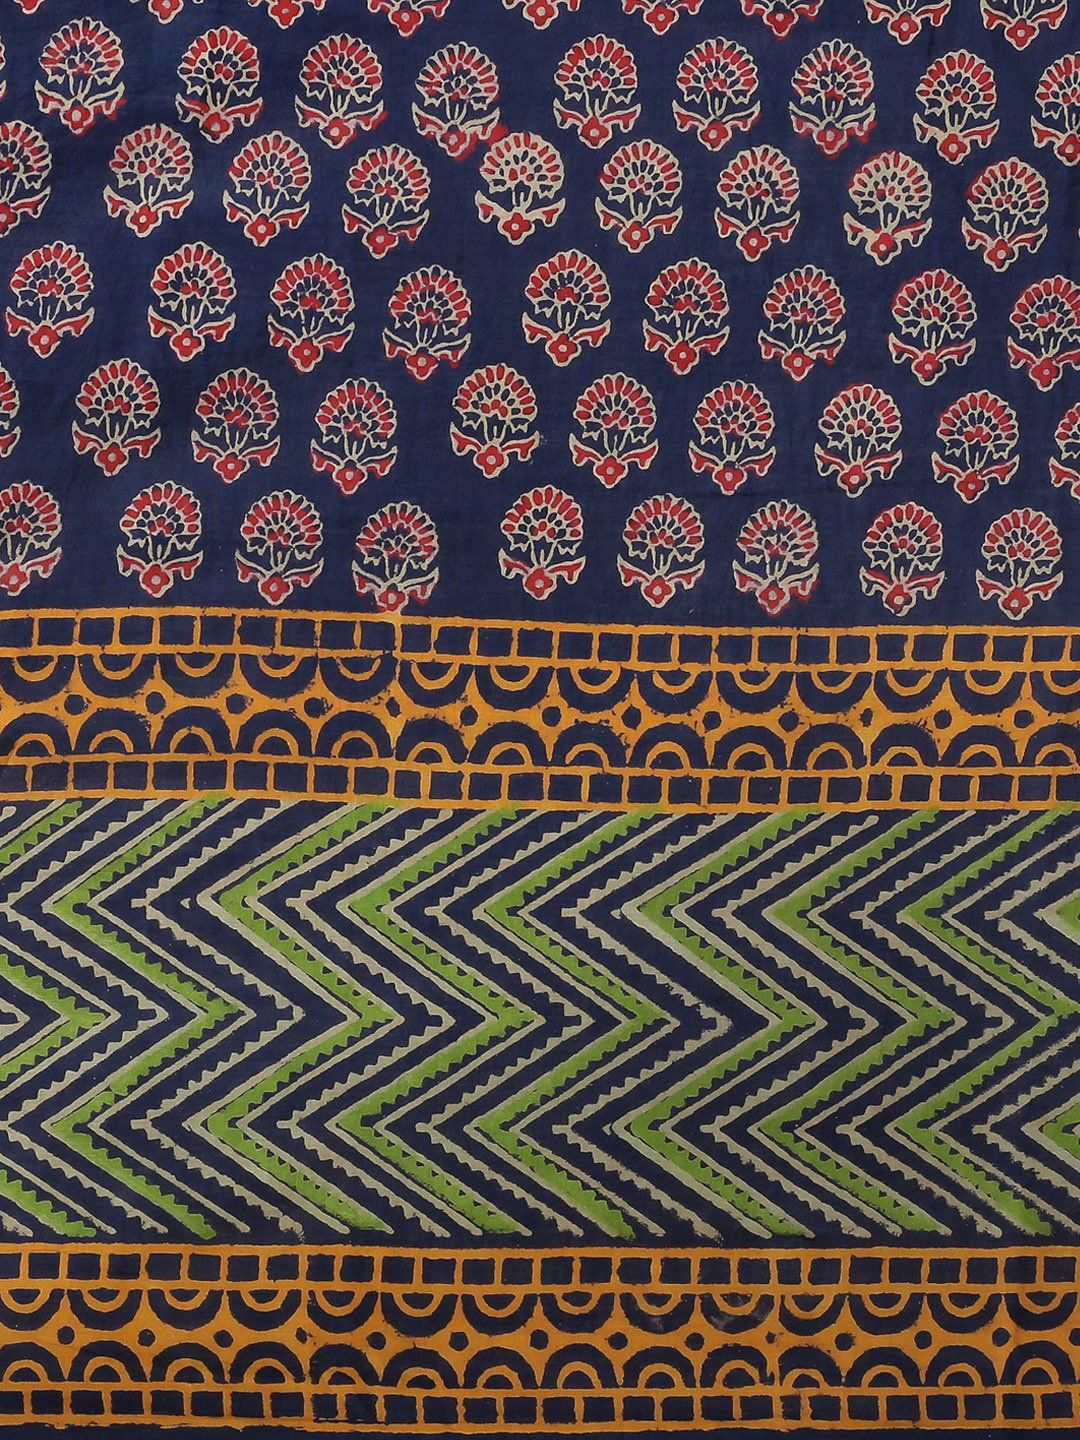 Navy Blue & Red Handblock Print Bagru Saree-Saree-Kalakari India-BHKPSA0110-Cotton, Geographical Indication, Hand Blocks, Hand Crafted, Heritage Prints, Sanganeri, Sarees, Sustainable Fabrics-[Linen,Ethnic,wear,Fashionista,Handloom,Handicraft,Indigo,blockprint,block,print,Cotton,Chanderi,Blue, latest,classy,party,bollywood,trendy,summer,style,traditional,formal,elegant,unique,style,hand,block,print, dabu,booti,gift,present,glamorous,affordable,collectible,Sari,Saree,printed, holi, Diwali, birthd